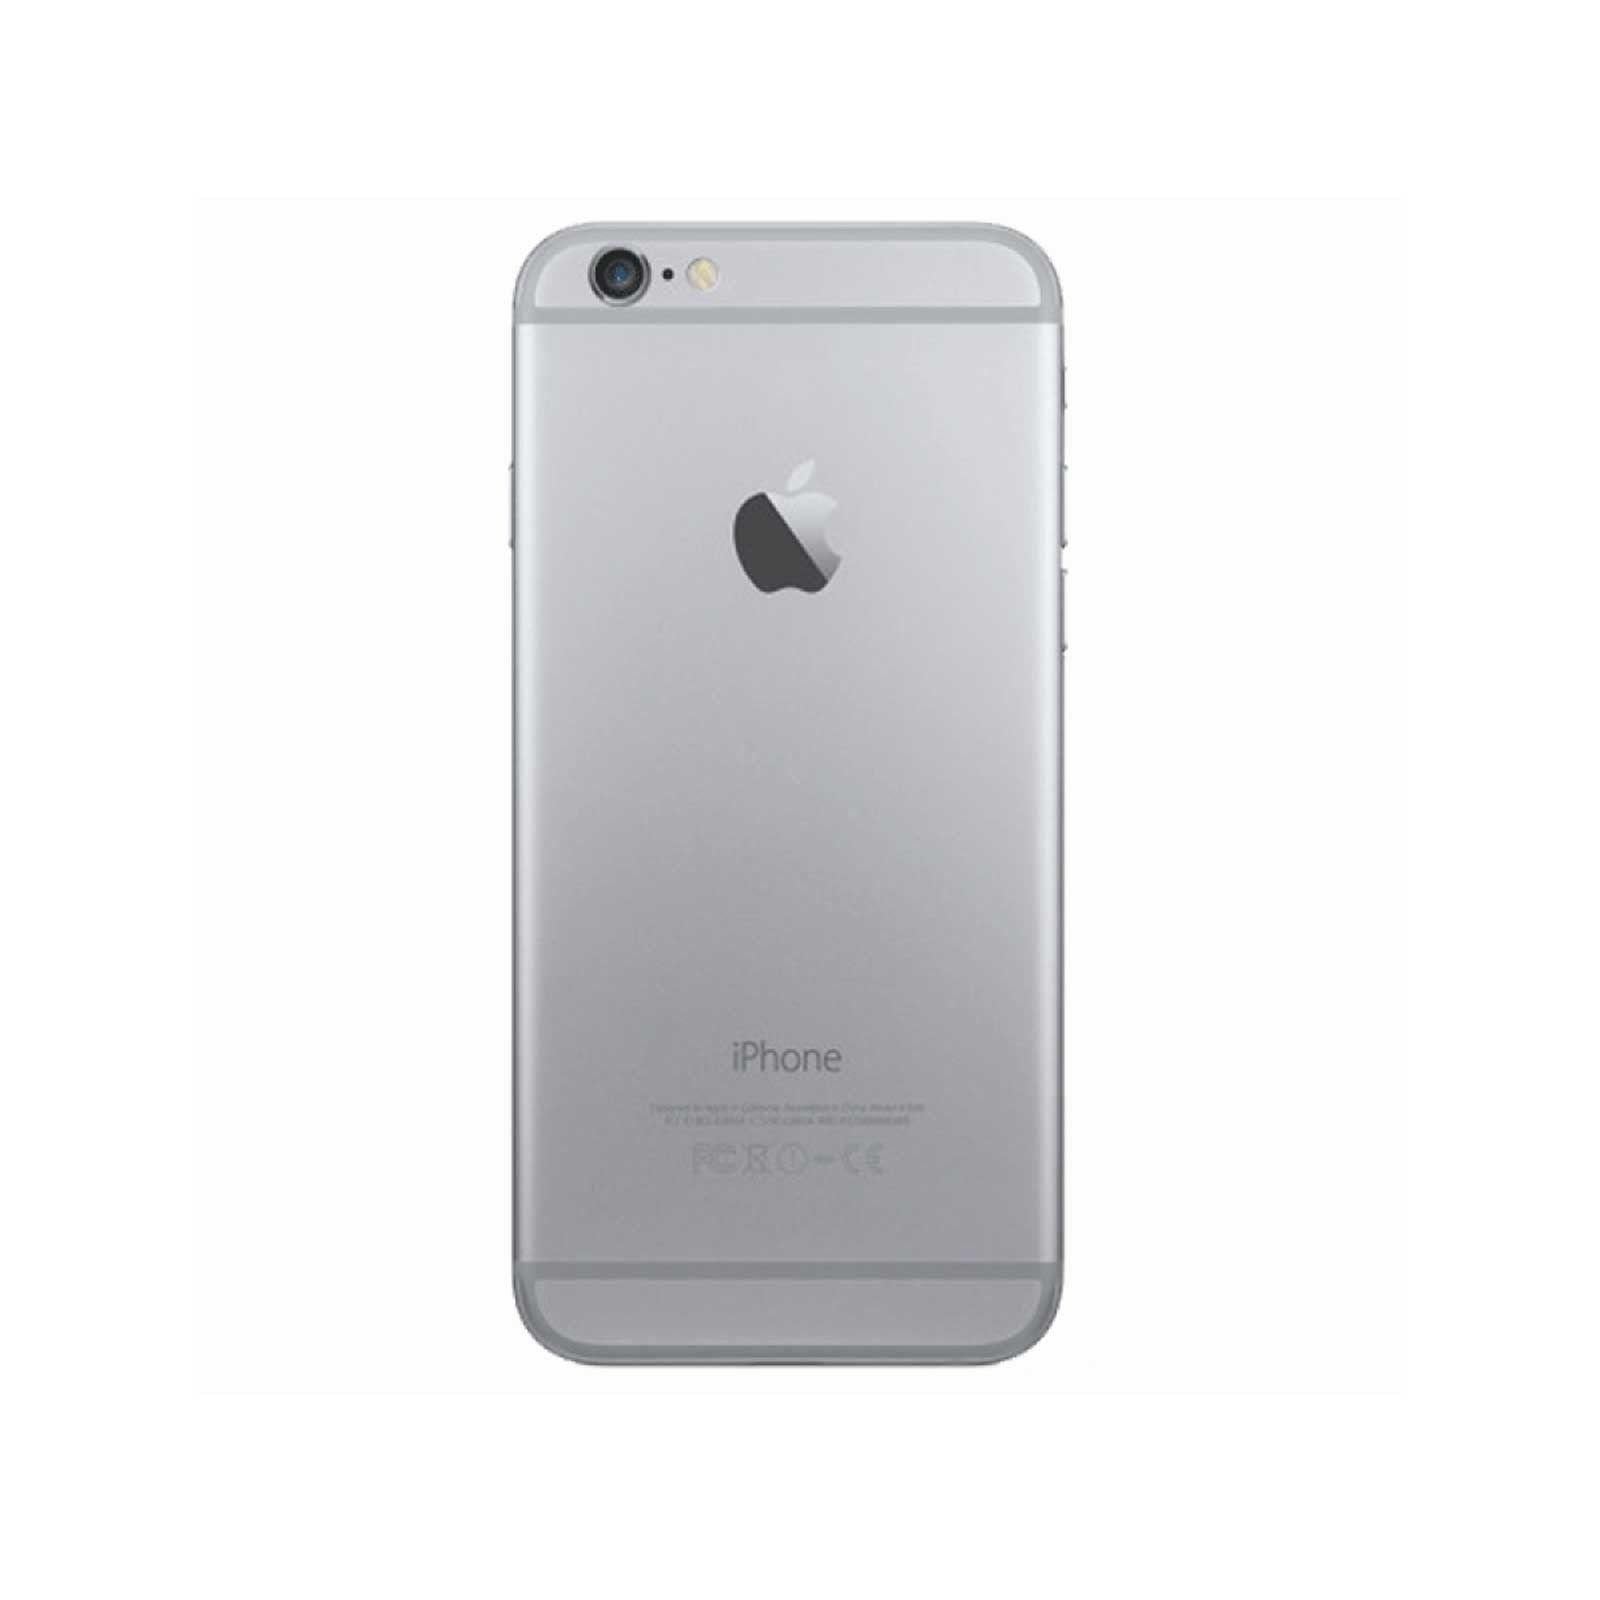 Apple iPhone 6s Plus (Space Grey, 16GB) : Get Free Shipping and Cash ...